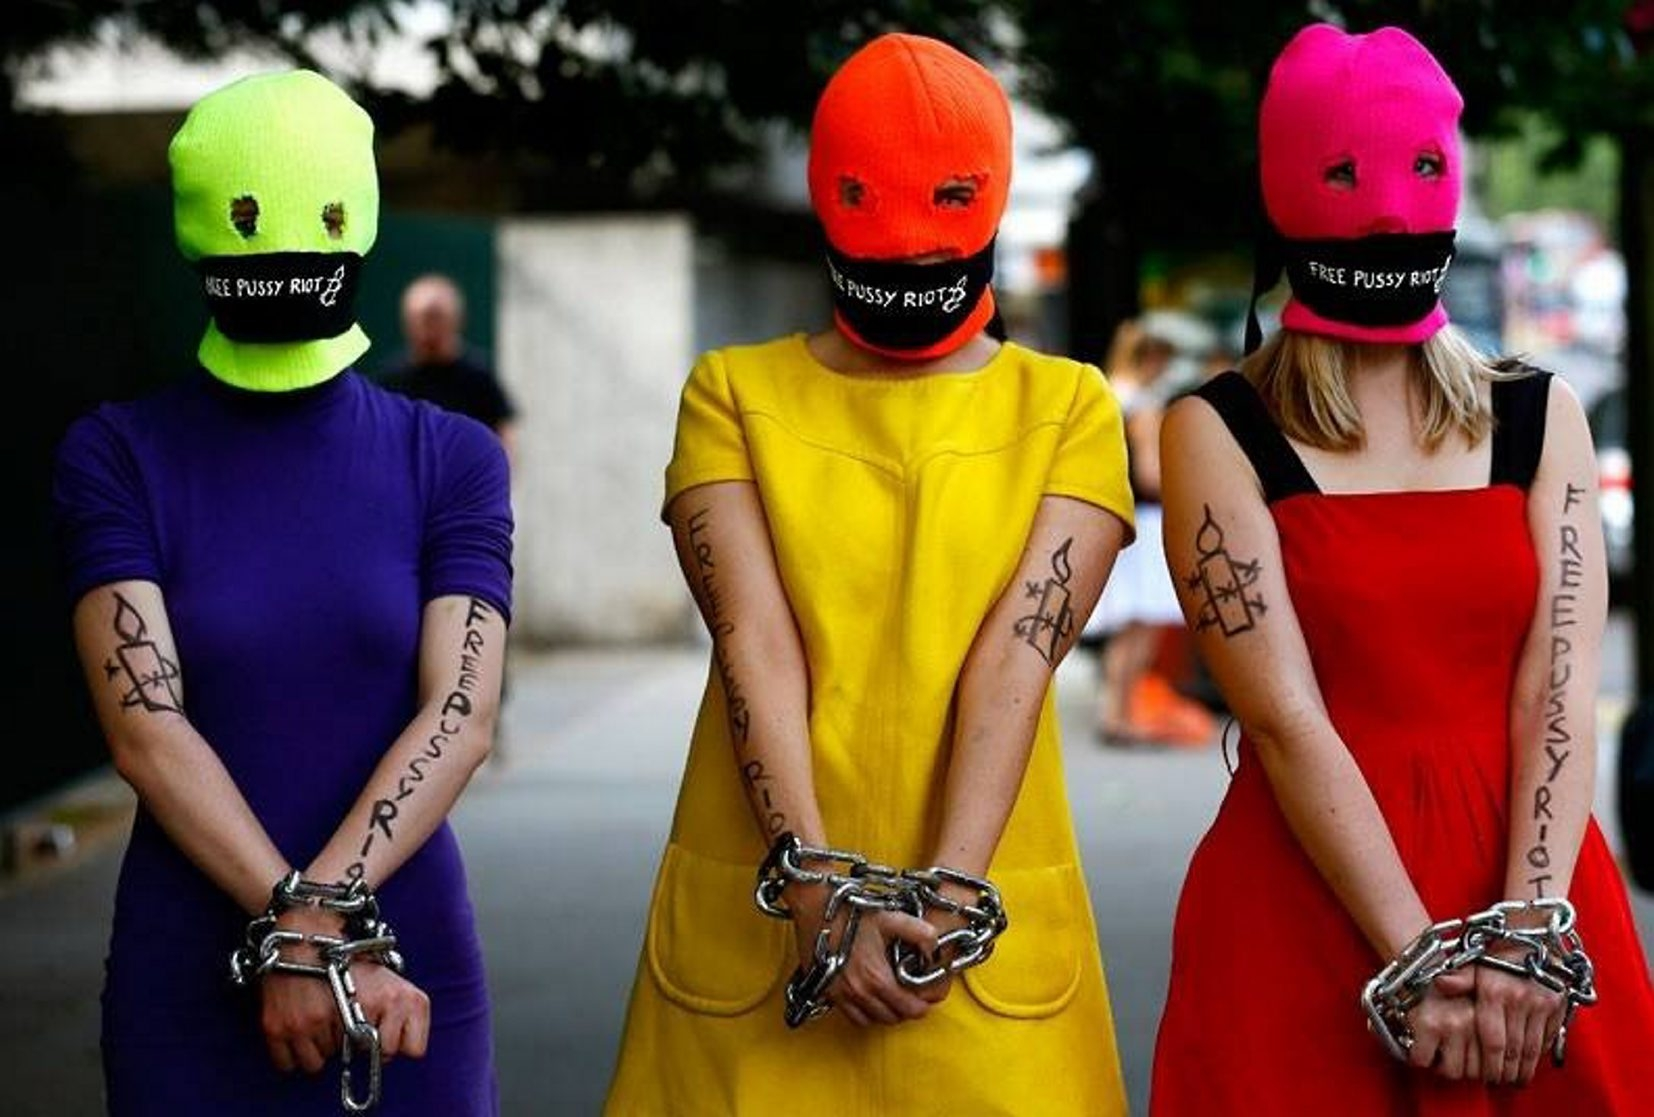 Members of Russian peformance art/punk/protest collective Pussy Riot will be at Asbury Hall @ Babeville.